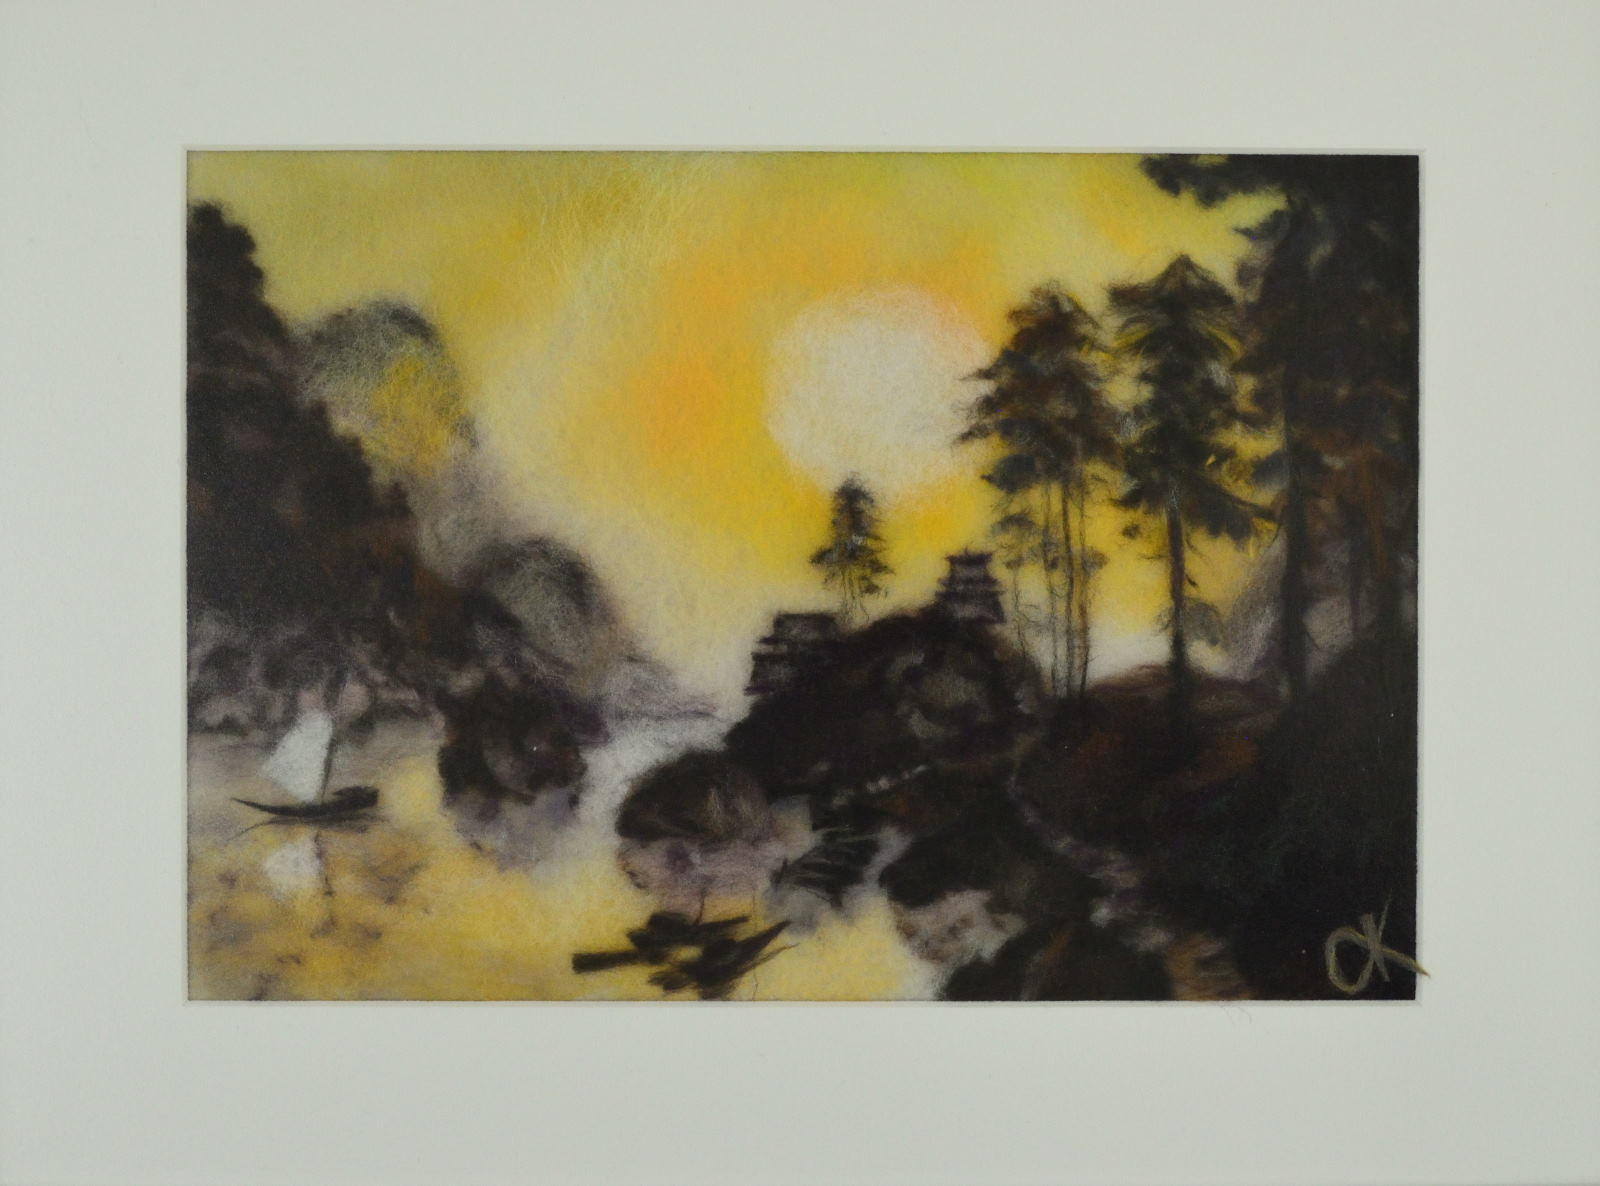 Japanese landscape. Wool Art Gallery. Picture made of merino wool